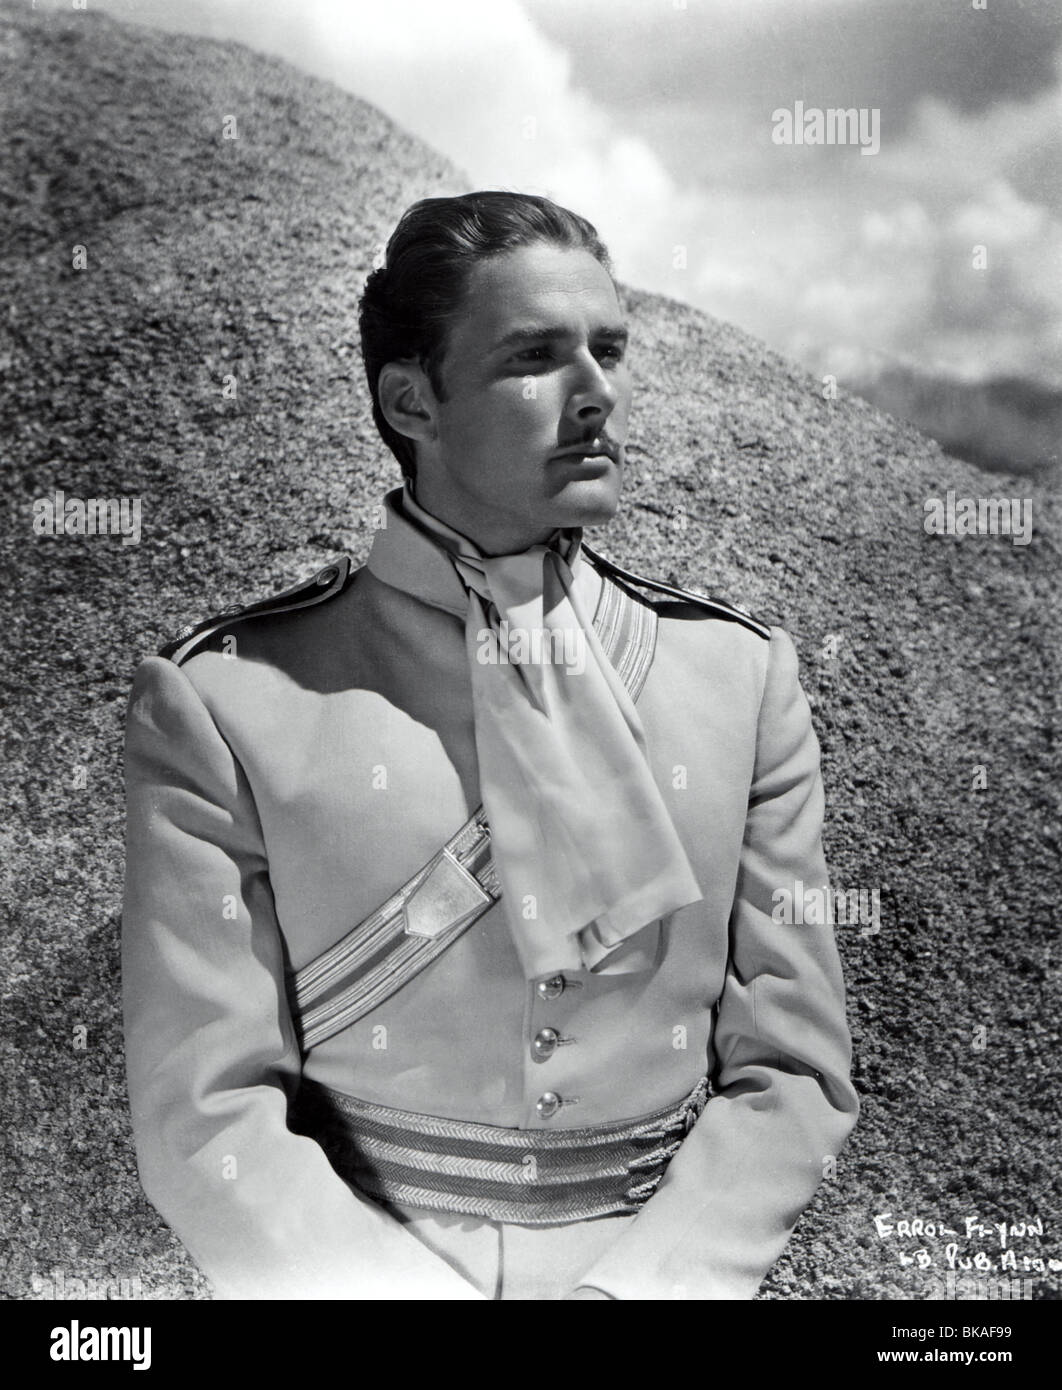 THE CHARGE OF THE LIGHT BRIGADE (1936) ERROL FLYNN CLB 005P - Stock Image